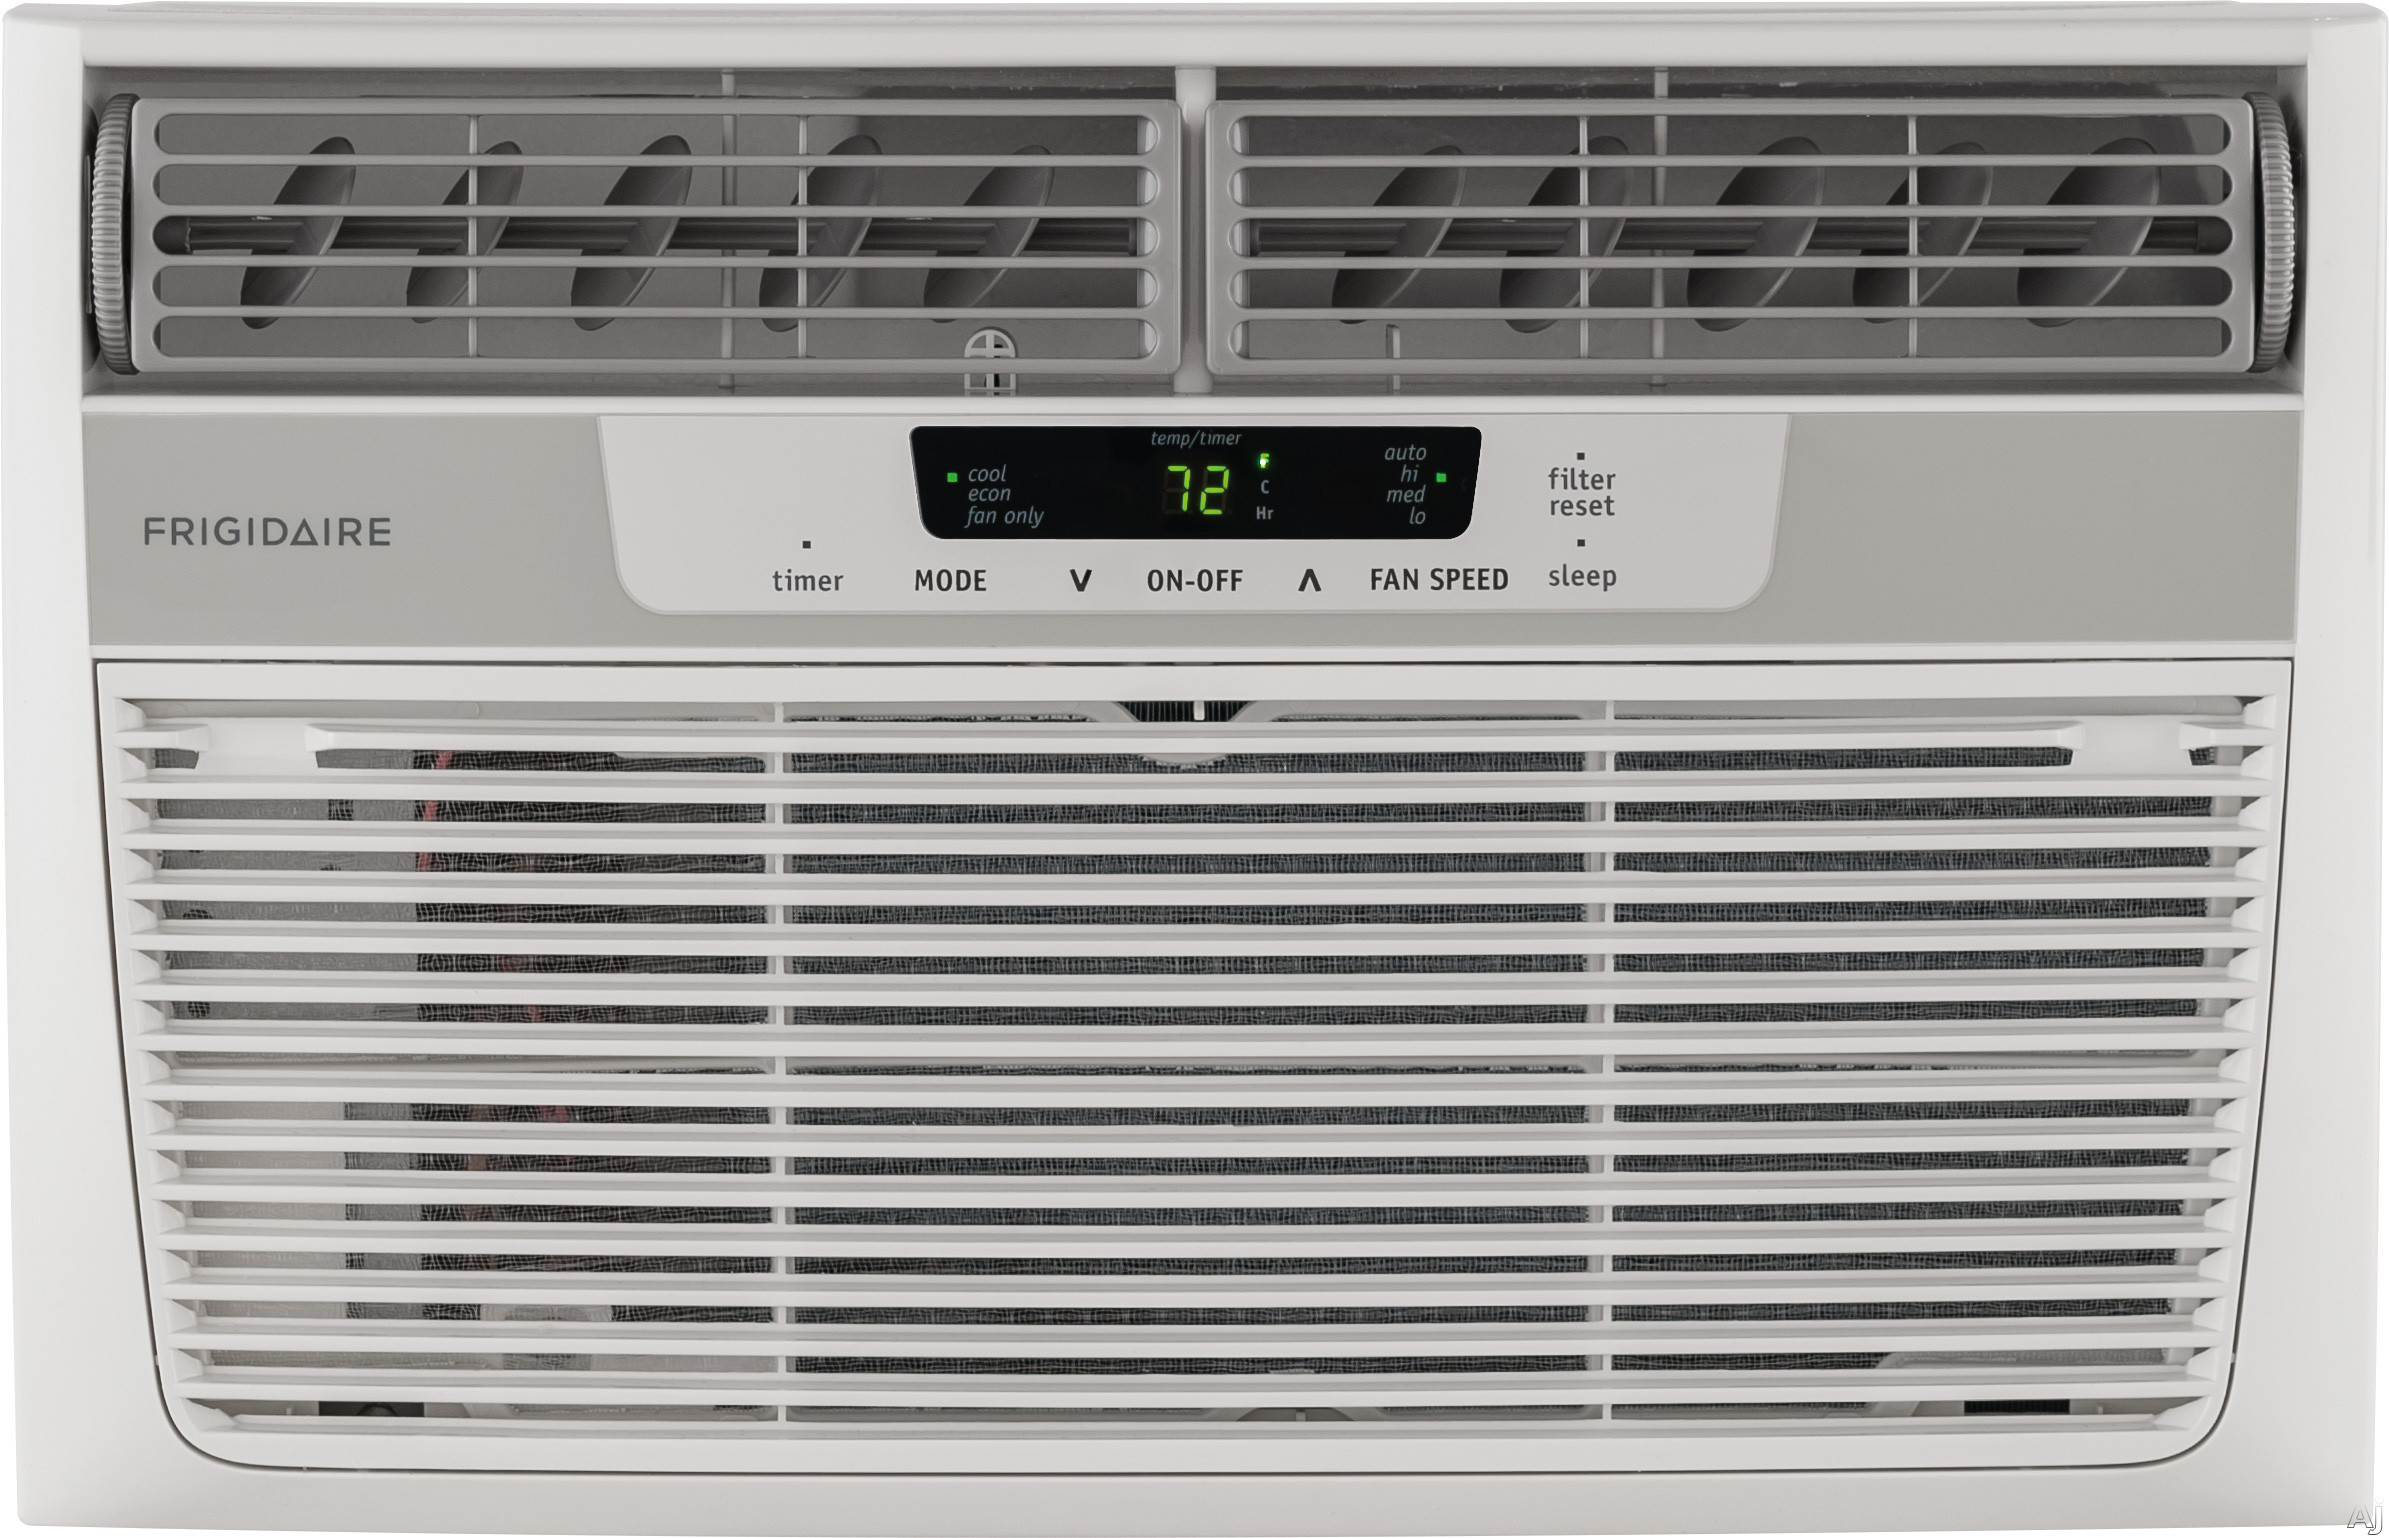 Frigidaire FFRA0822R1 8,000 BTU Window Air Conditioner with 10.9 EER, R-410A Refrigerant, 1.7 Pts/Hr Dehumidification, 350 sq. ft. Cooling Area, Auto Restart and Remote Control